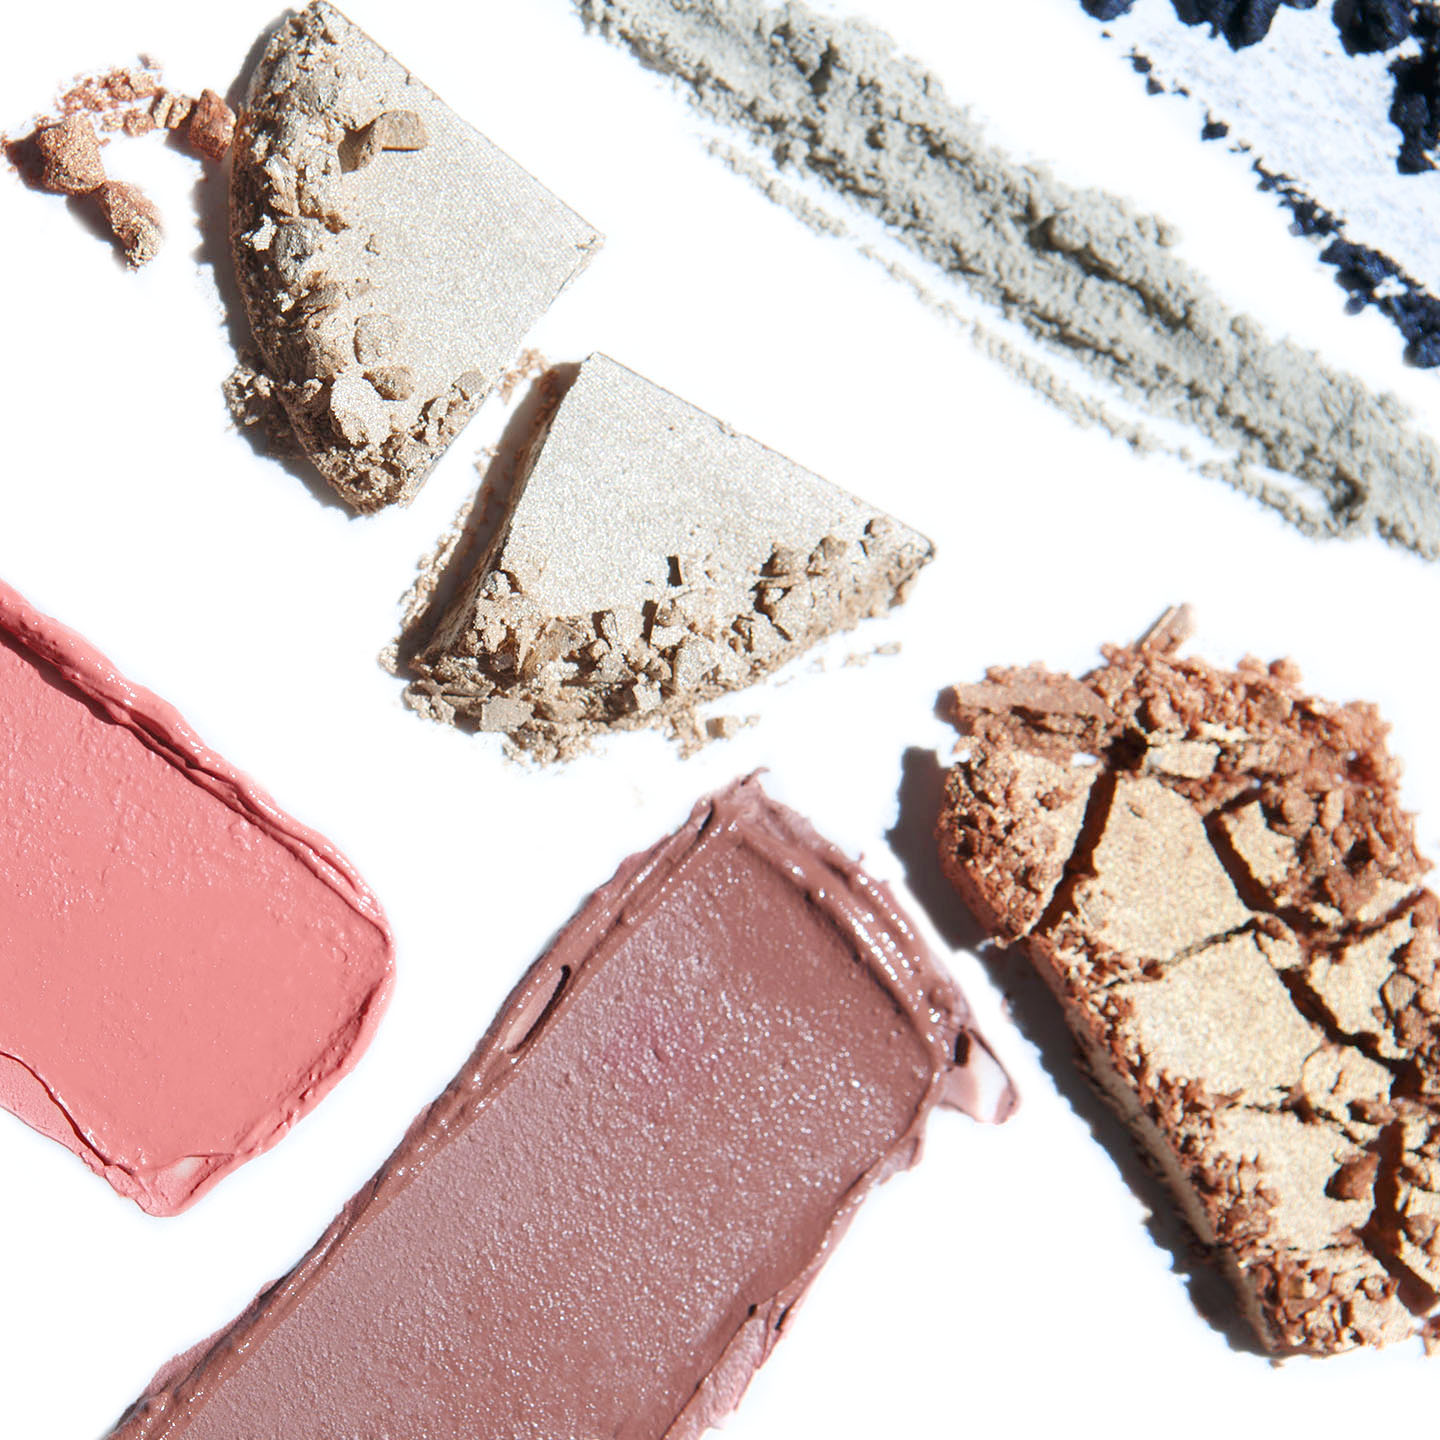 7 Ways to Resue Unwanted beauty products 4.jpg